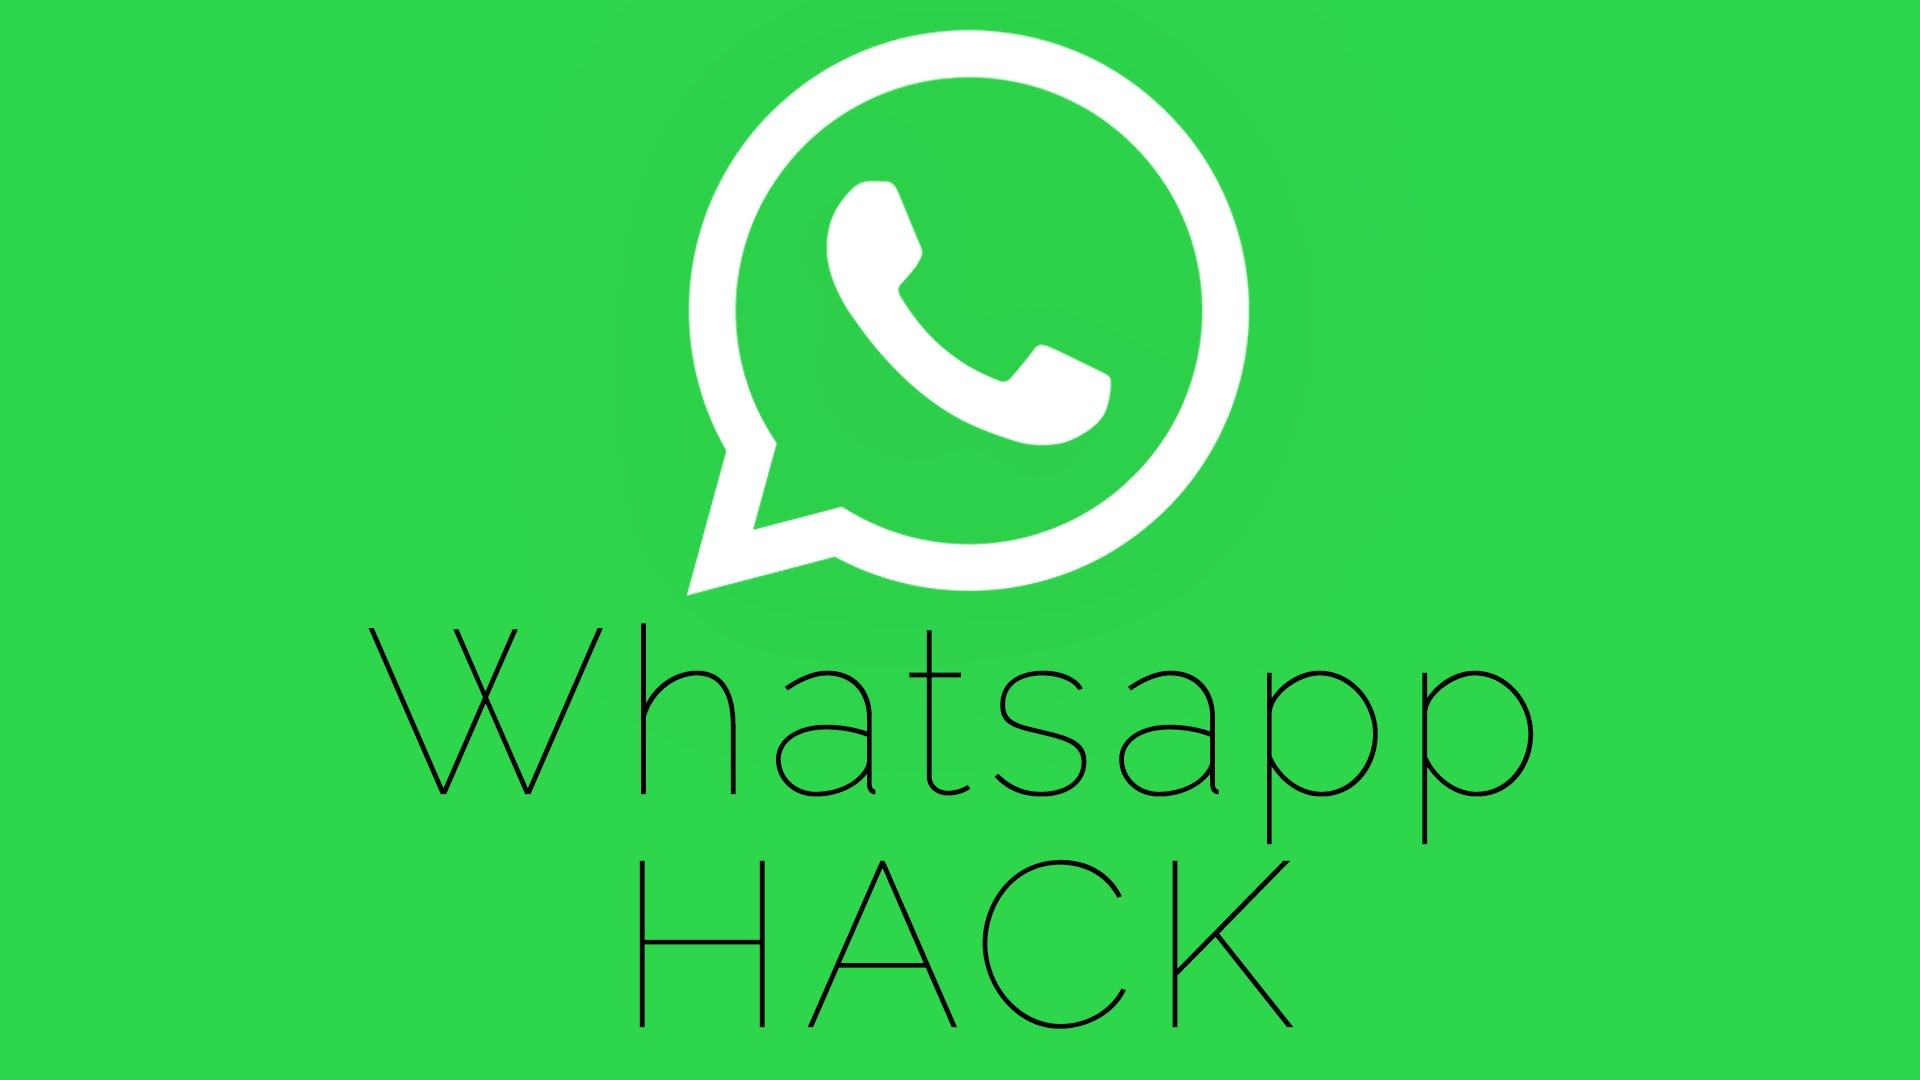 [How To] WhatsApp: Send High Quality Image Audio Video ...